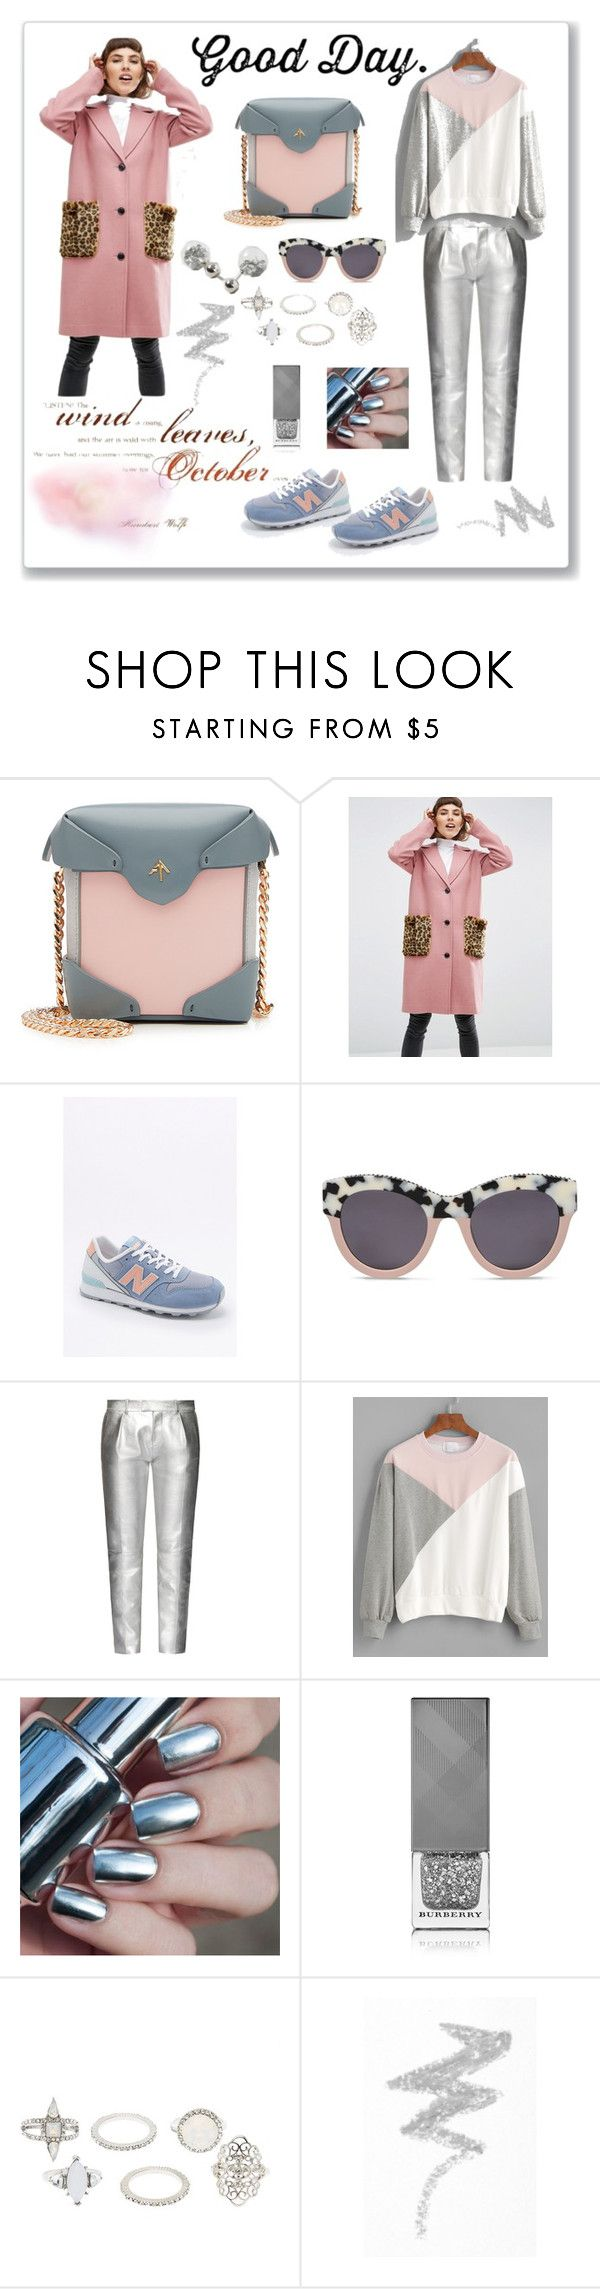 """Silver&arose"" by dilka-ylibka on Polyvore featuring мода, MANU Atelier, ASOS, New Balance, STELLA McCARTNEY, Tod's, Burberry, Charlotte Russe, NYX и Dorothy Perkins"